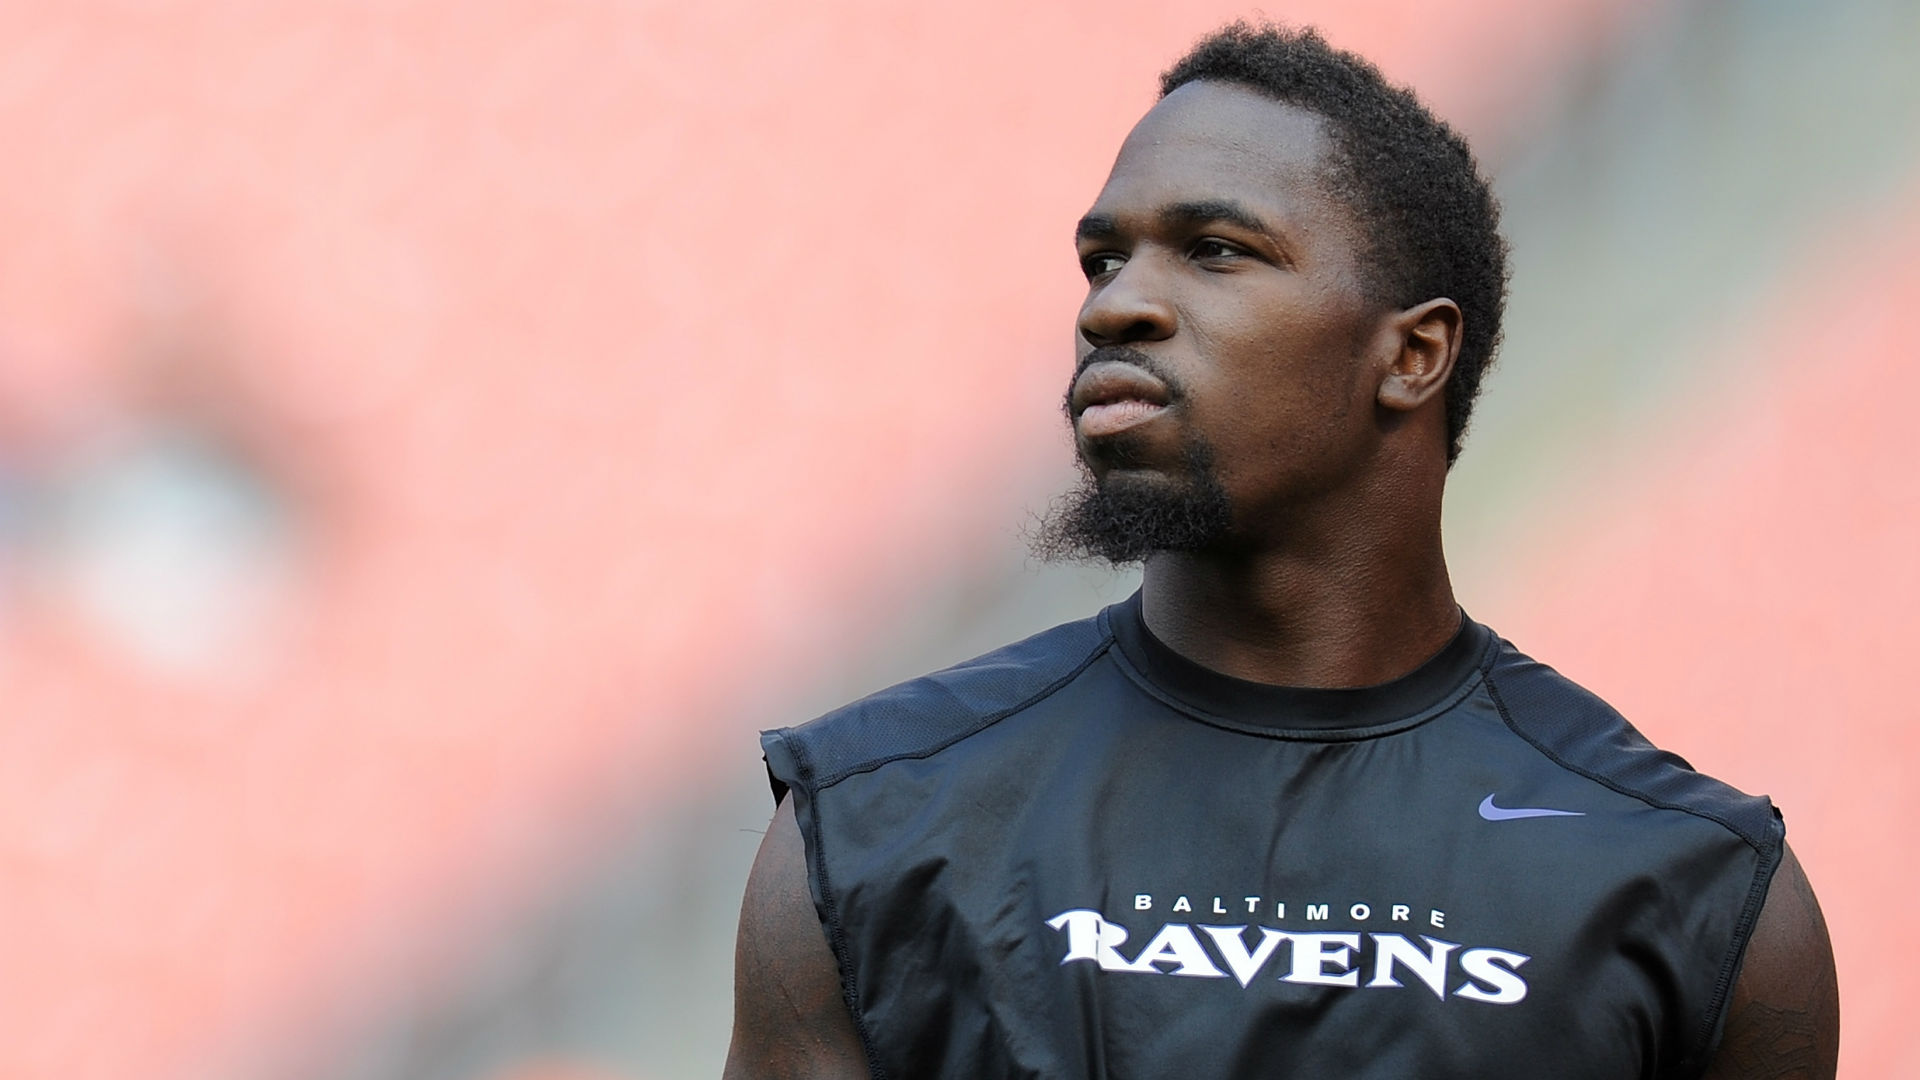 Ravens rookie wasn t aware rookies could make Pro Bowl